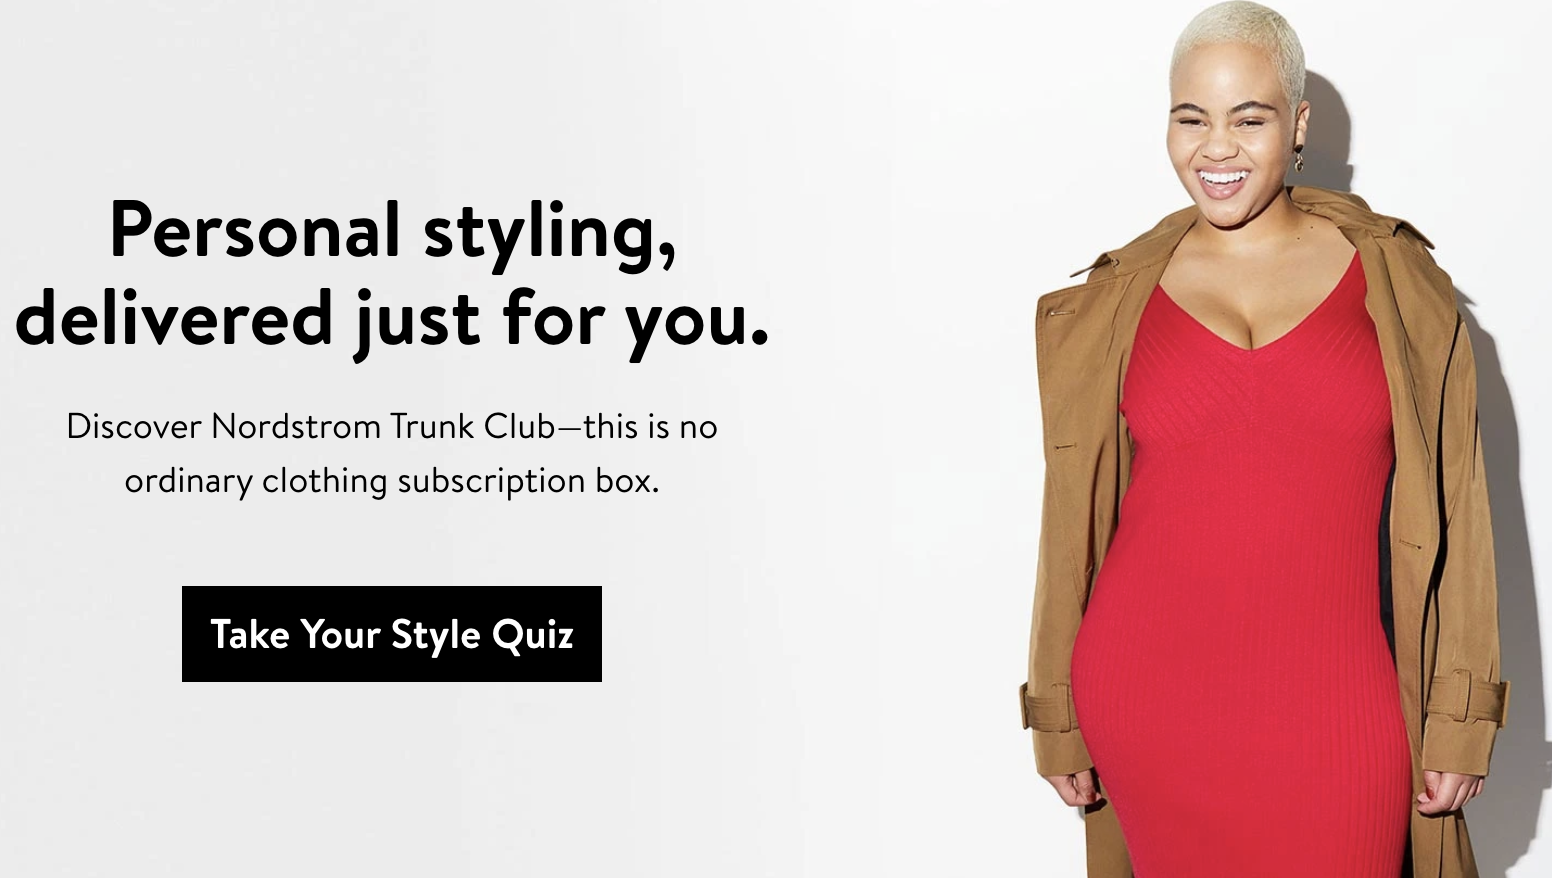 Banner for the style quiz on Nordstrom's site next to a model